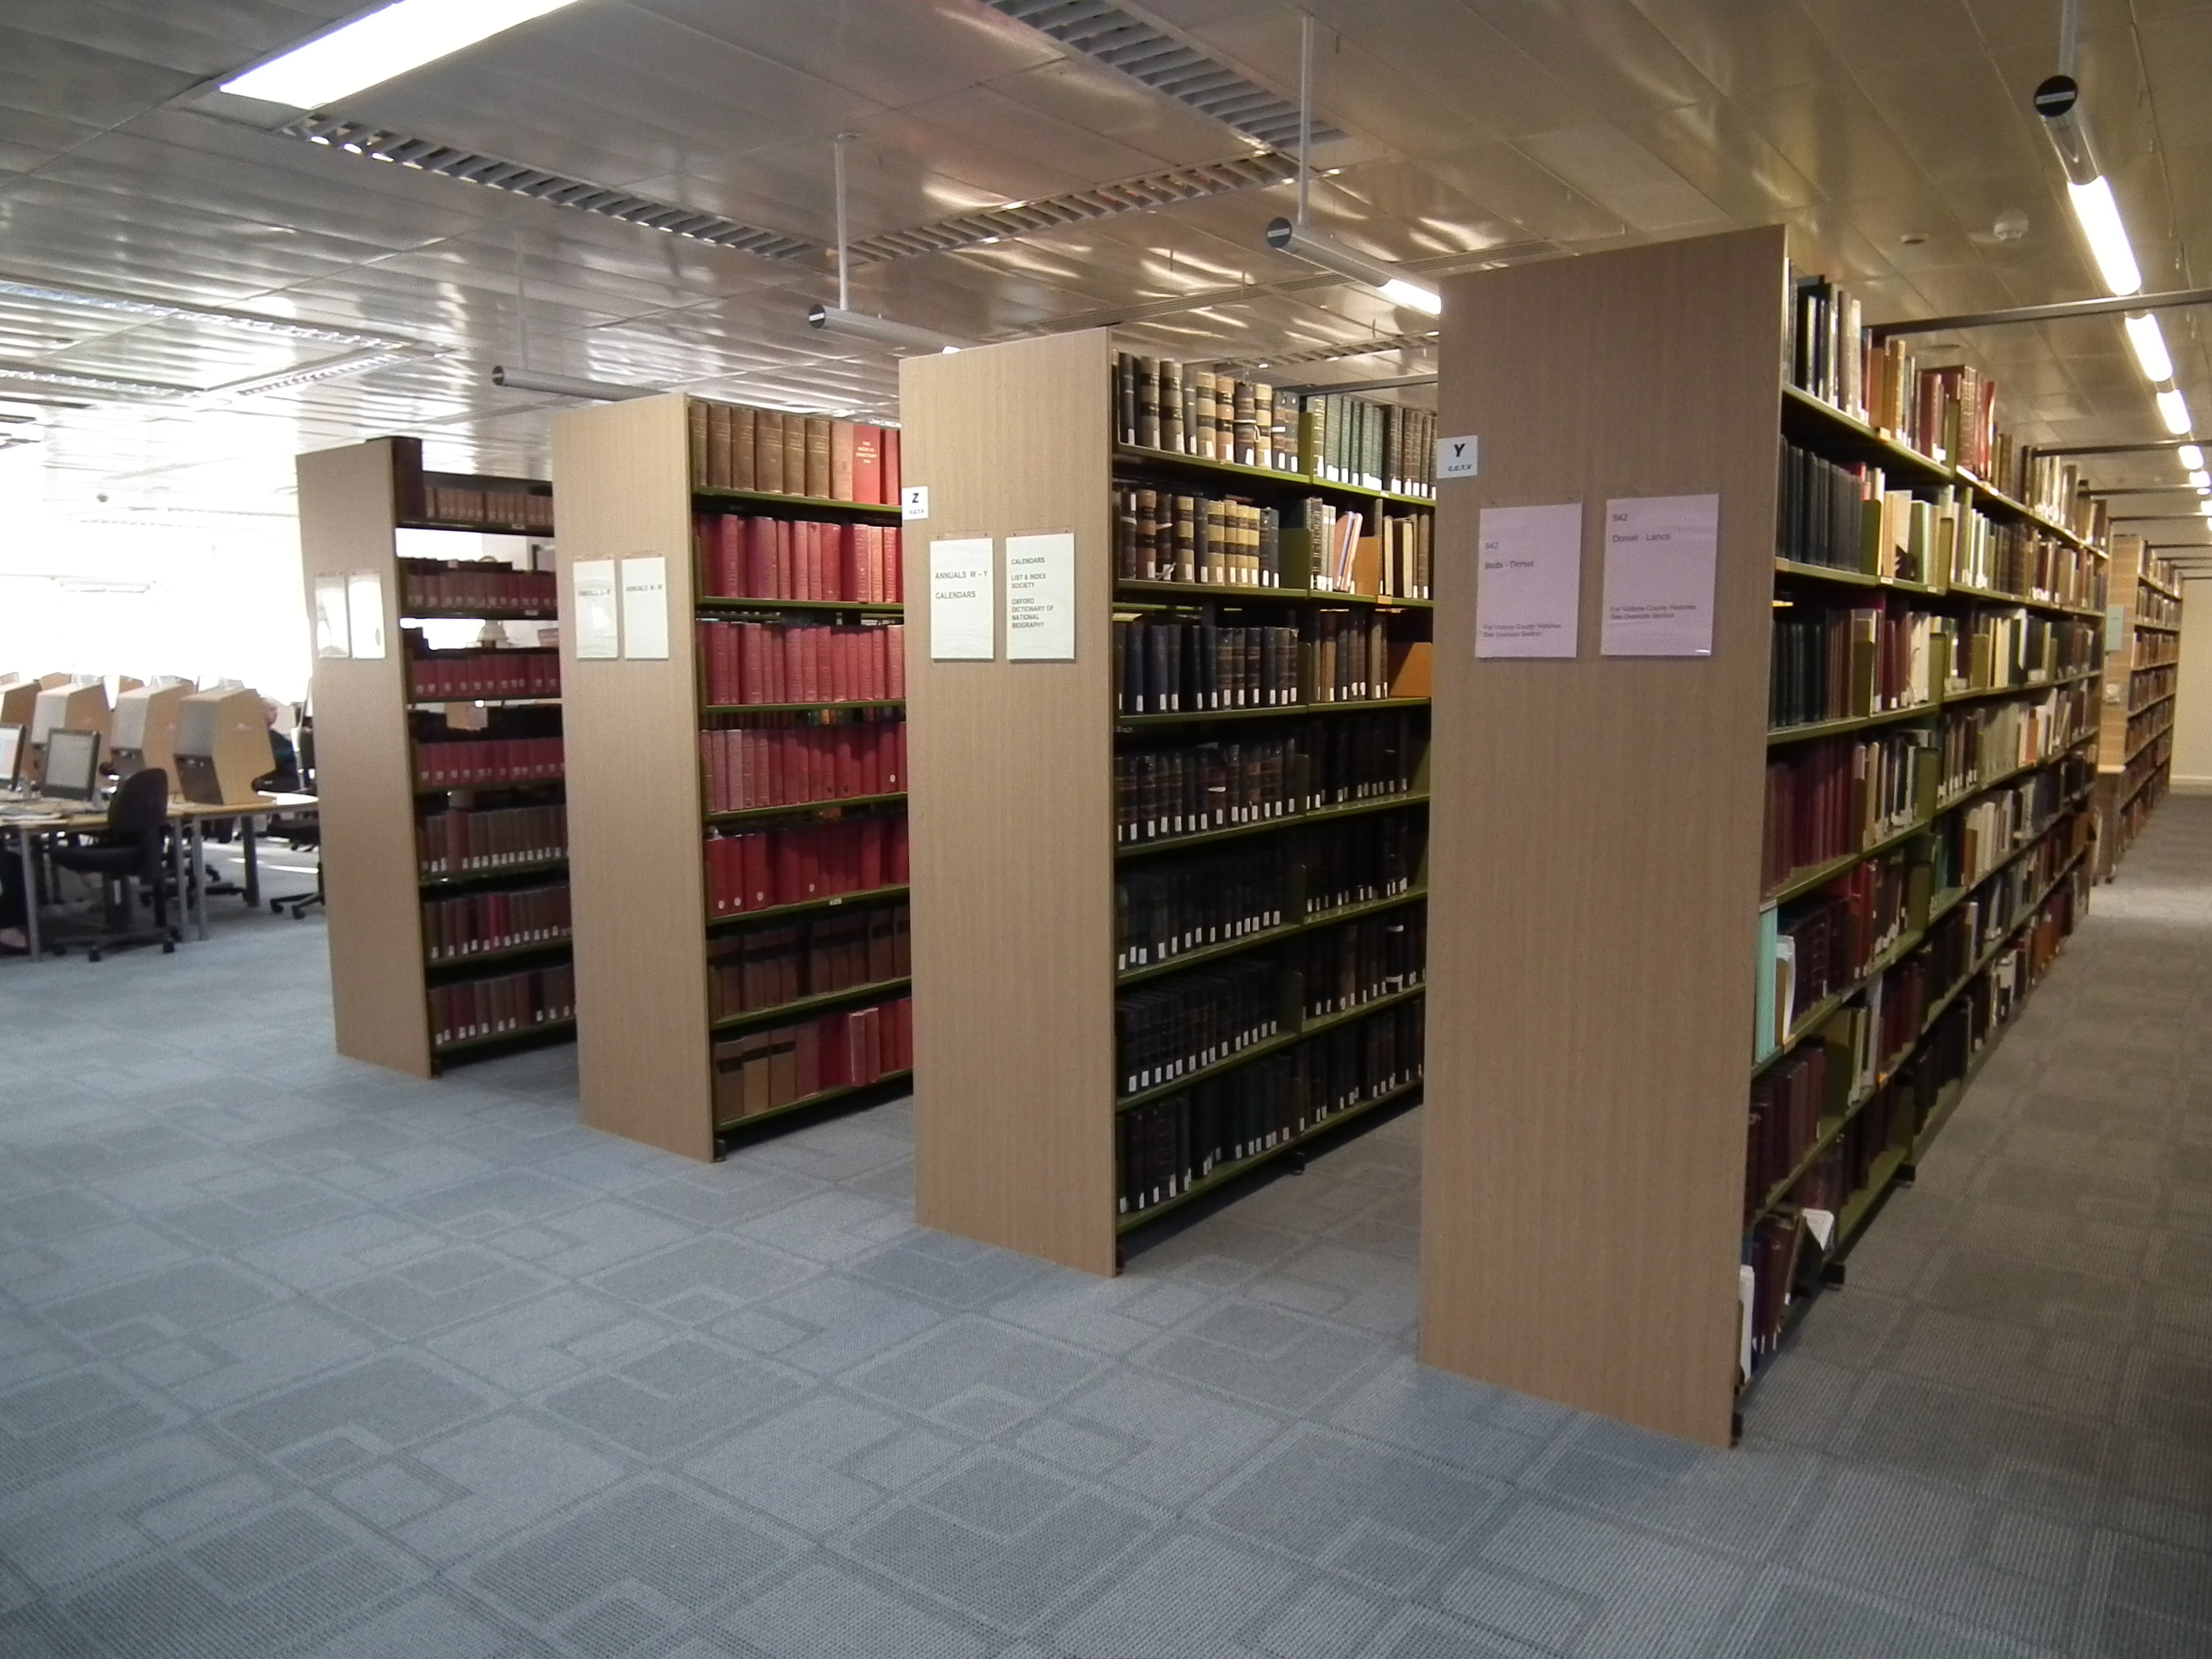 Photograph of the interior of The National Archives Library